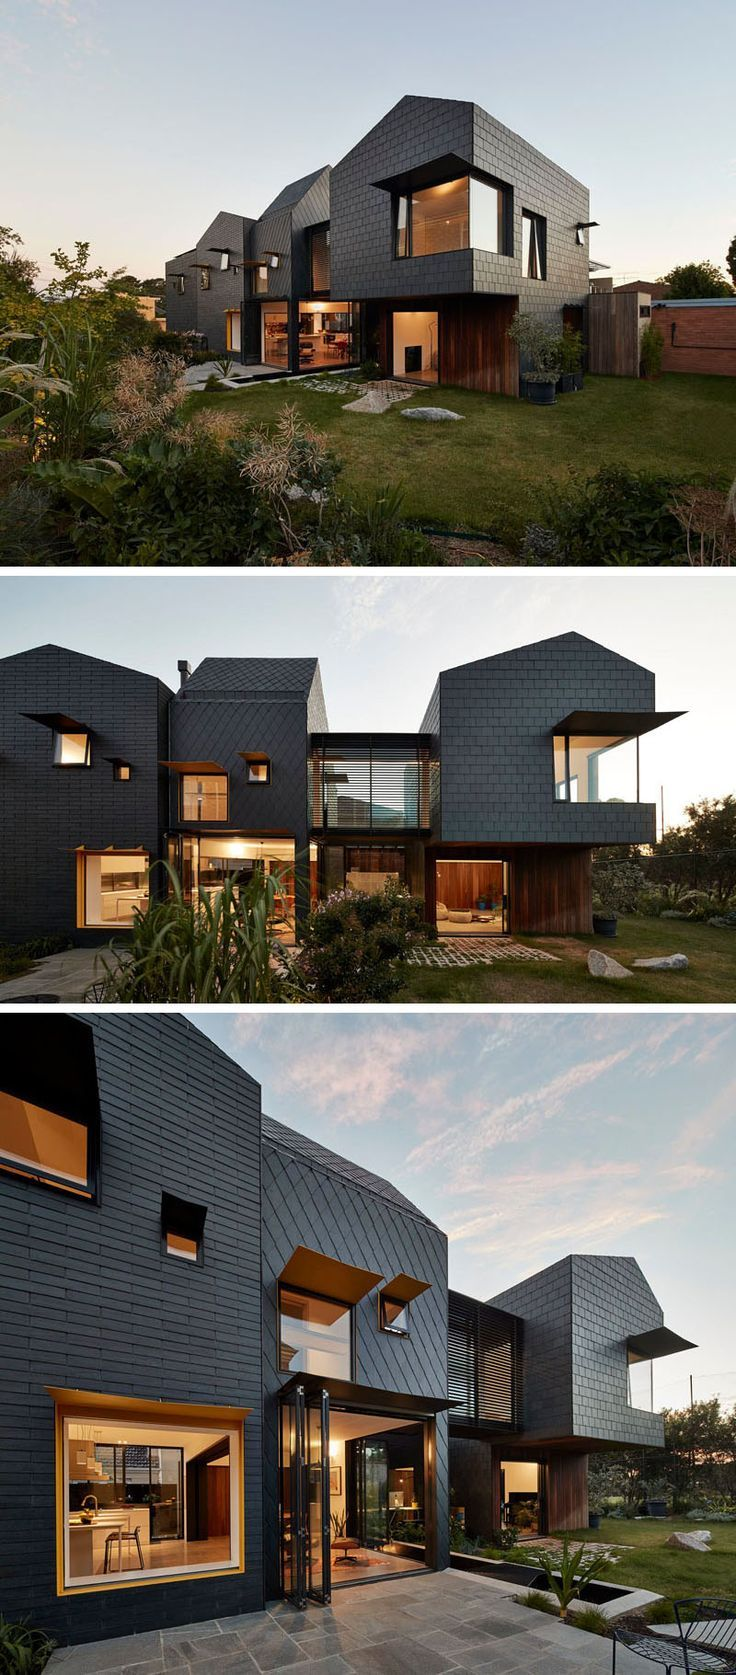 Dark Grey Slate Creatively Covers This Australian Home | Tile ...